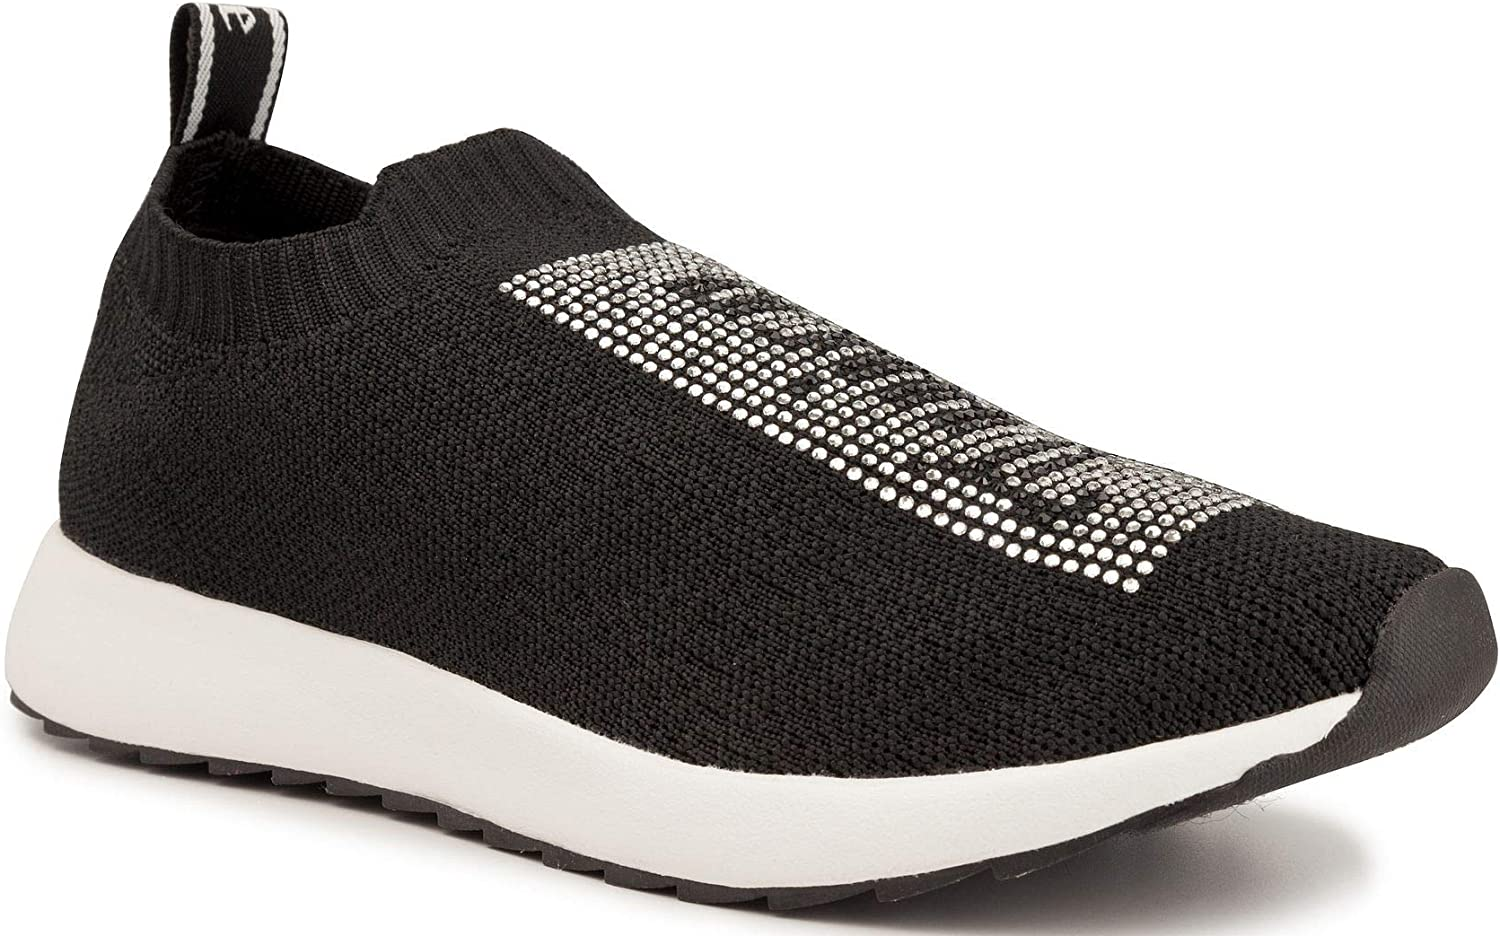 Juicy Couture Women's Charmed Comfortable Slip On Sneaker Shoe with No-Tie Laces and Cute Design